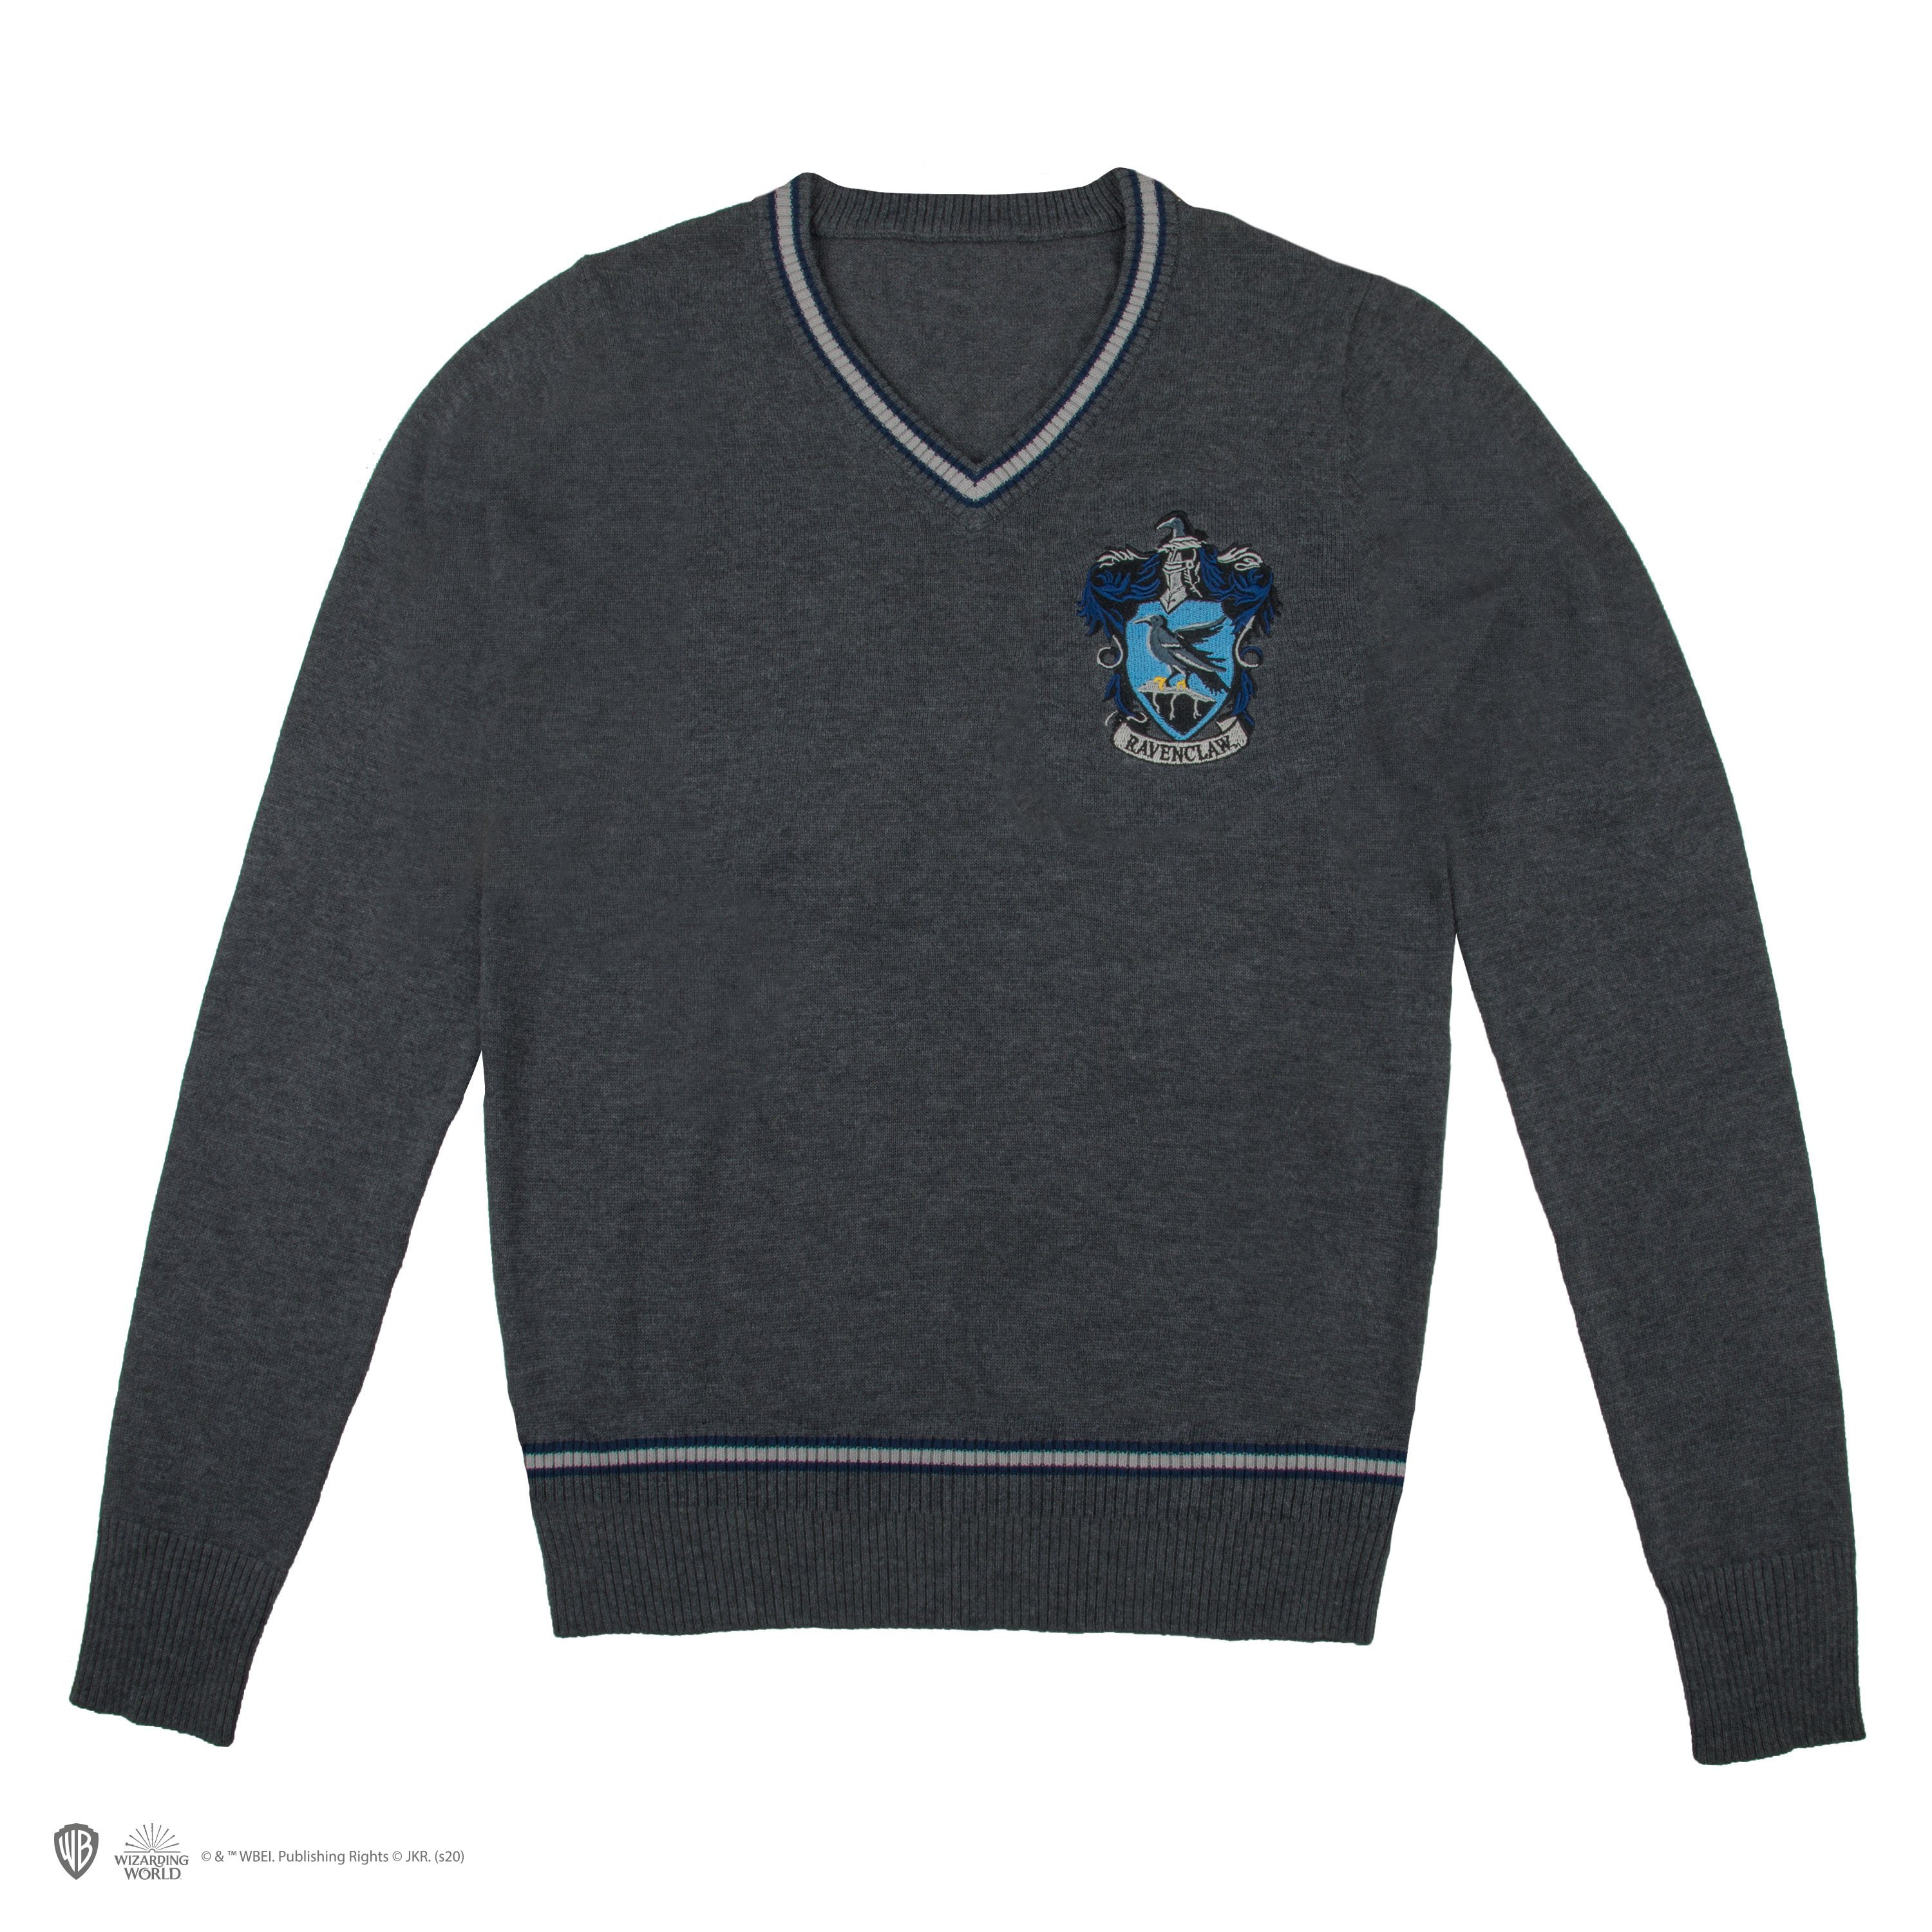 Harry Potter - Ravenclaw - Grey Knitted Sweater - X-Small